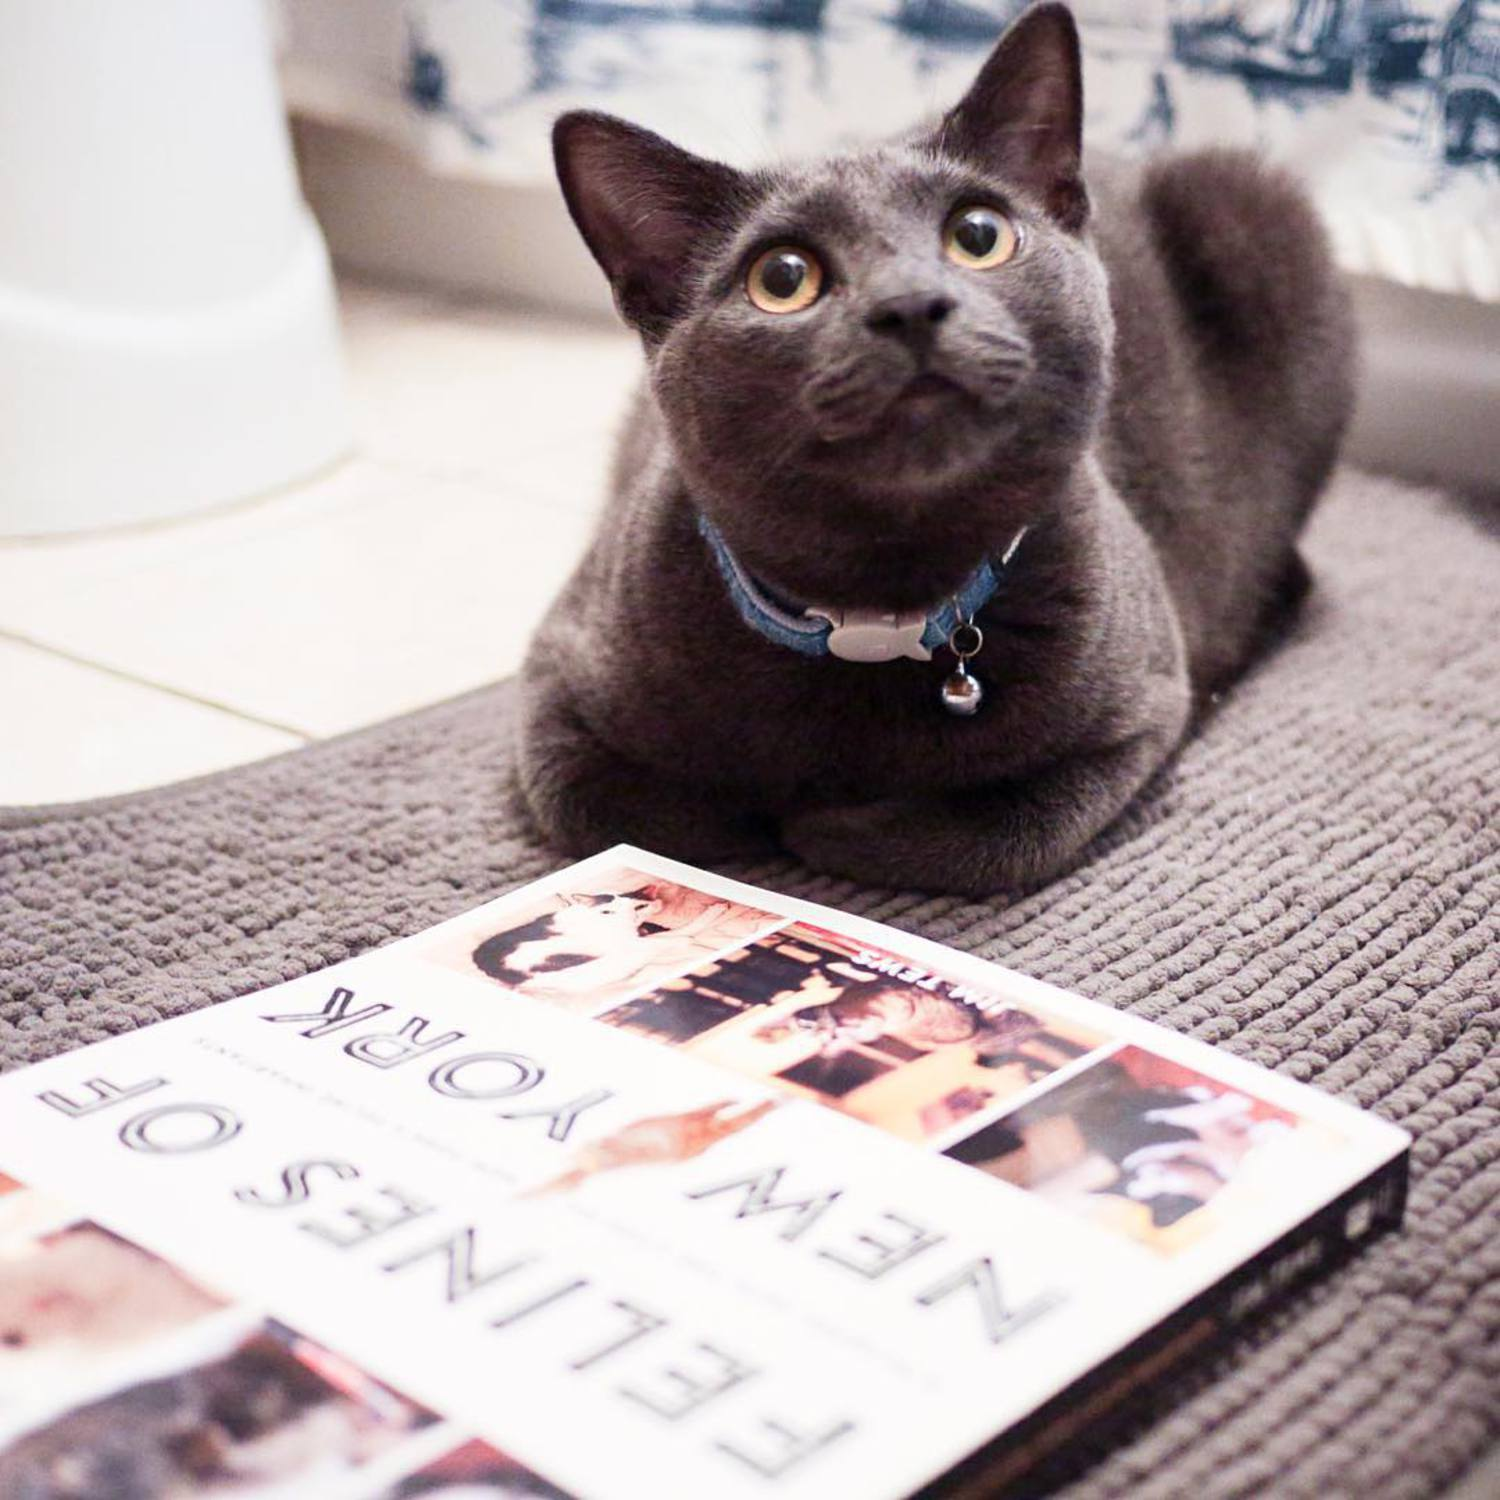 """I prefer to read my copy of Felines of New York in the people's bathroom, but you can read yours wherever."" - Arthur, Queens  Pre-order it now!